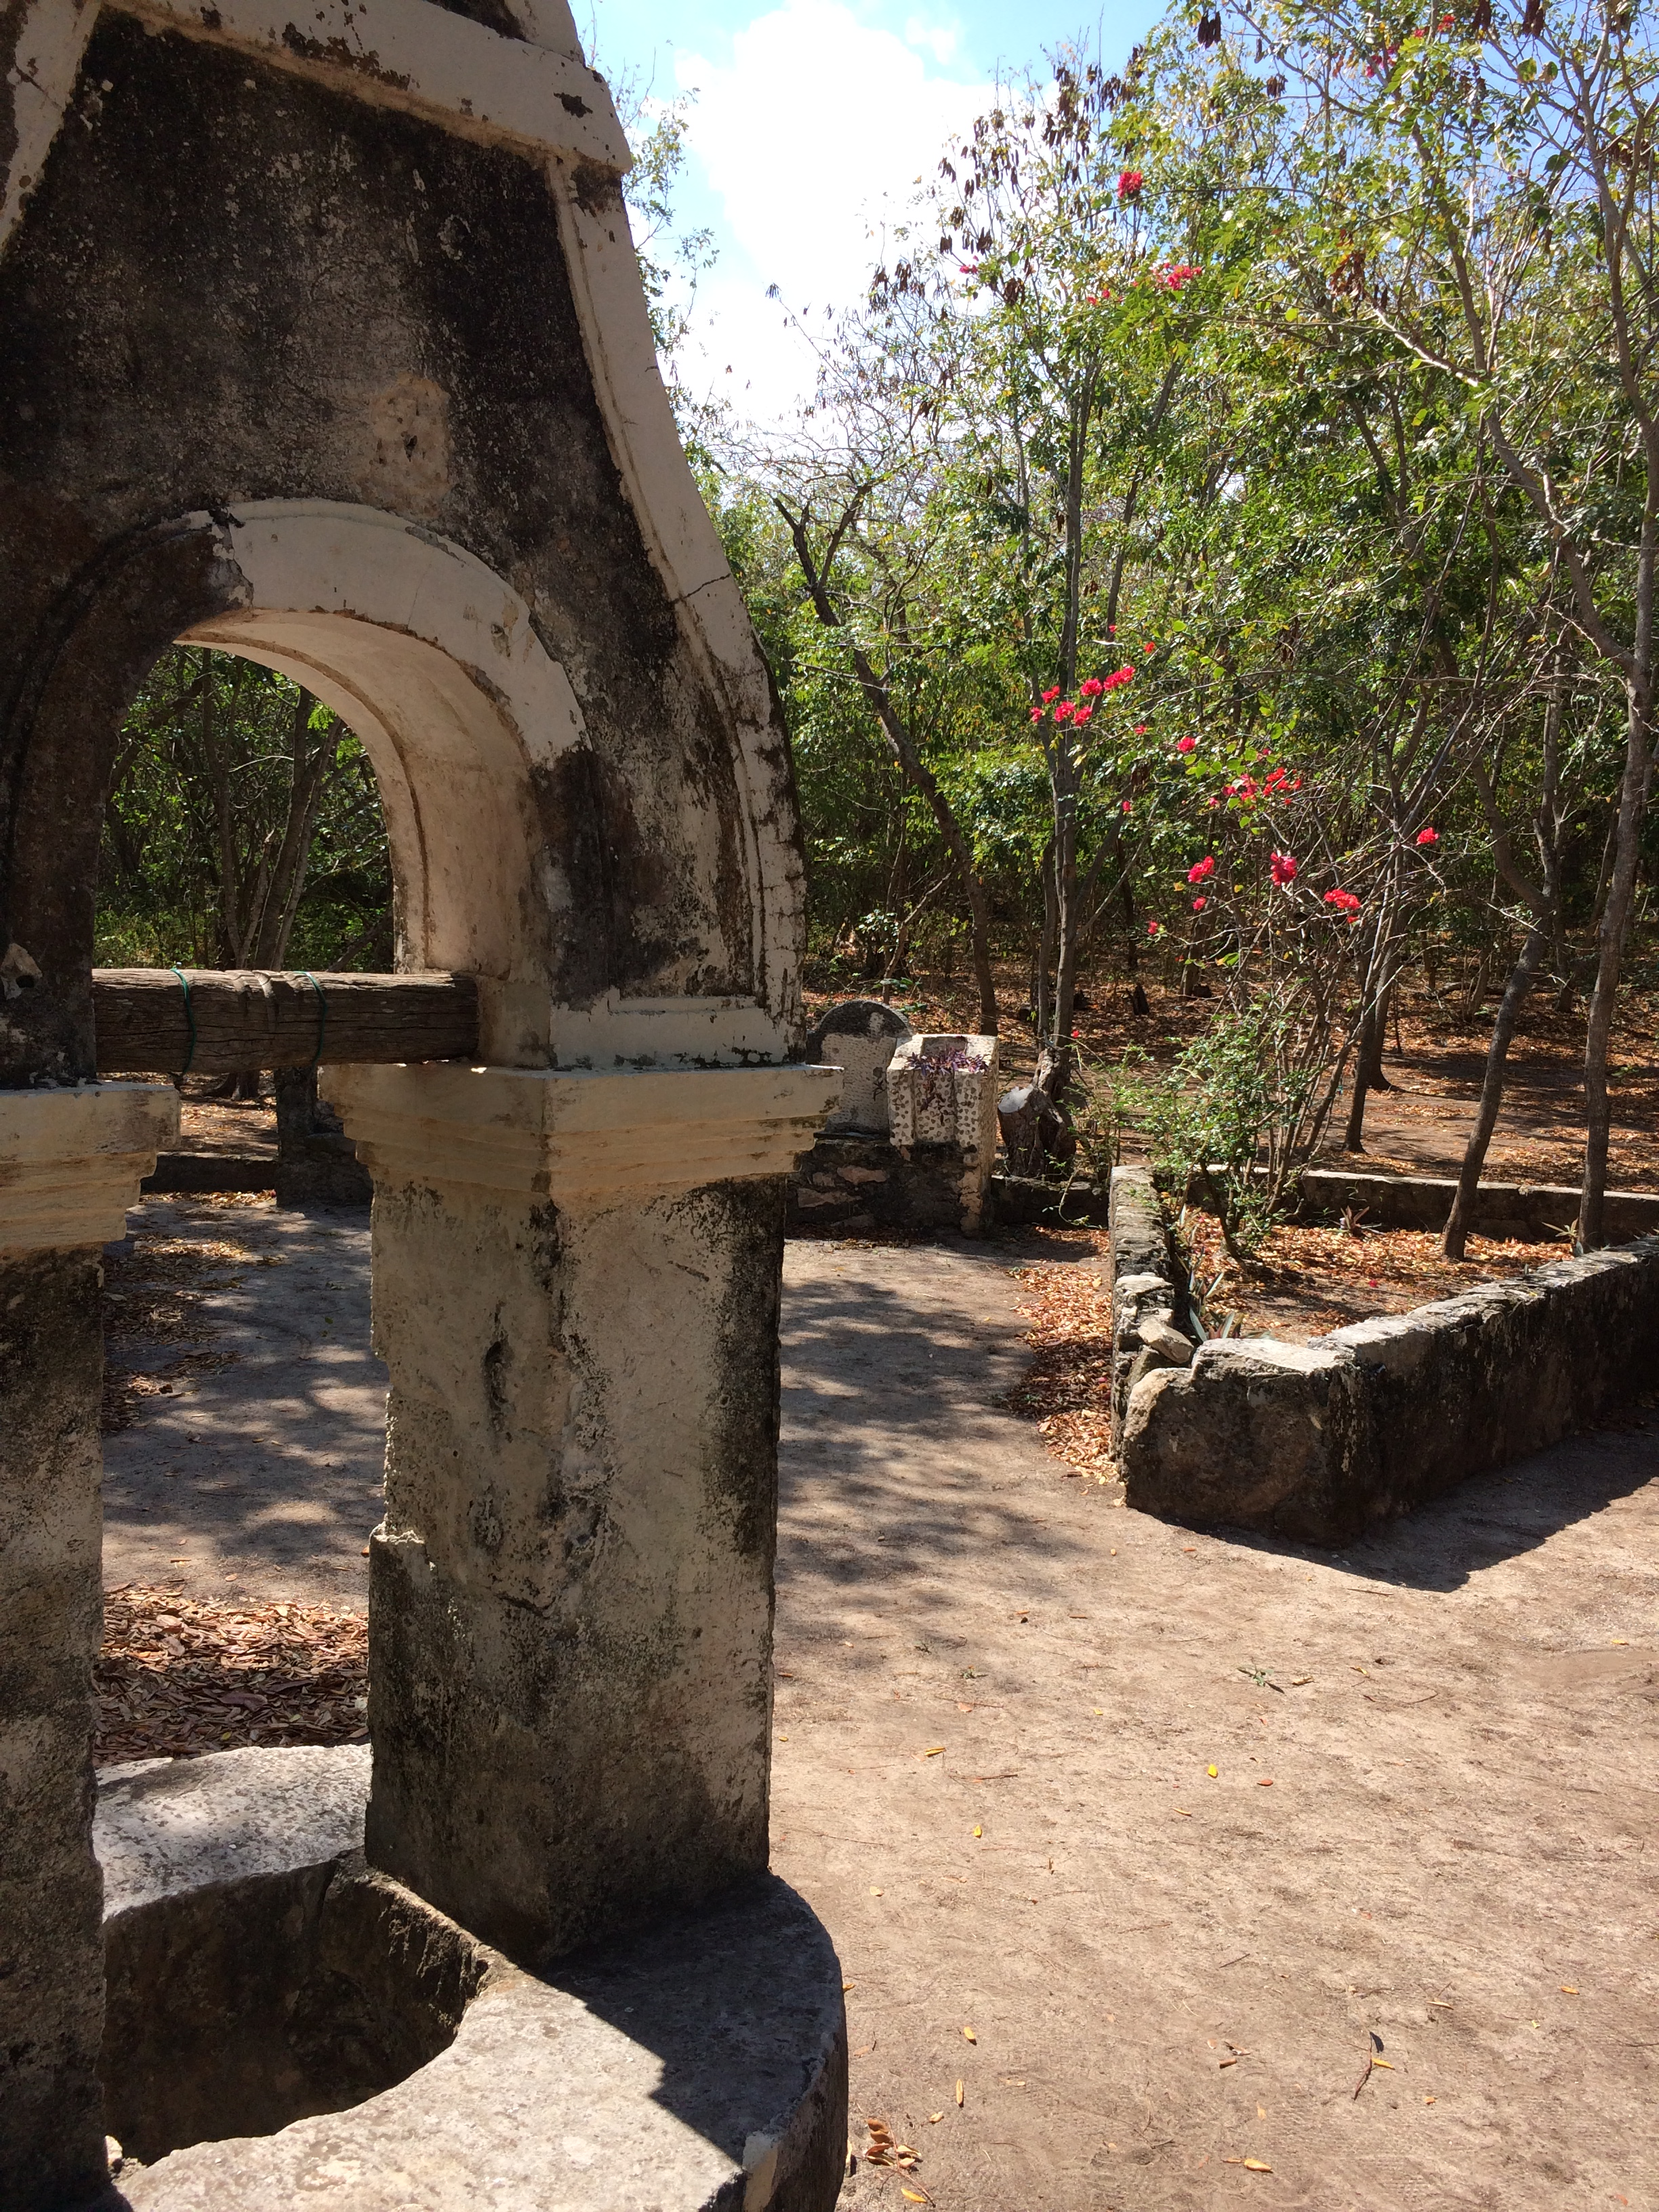 The well at the center of the forgotten garden.